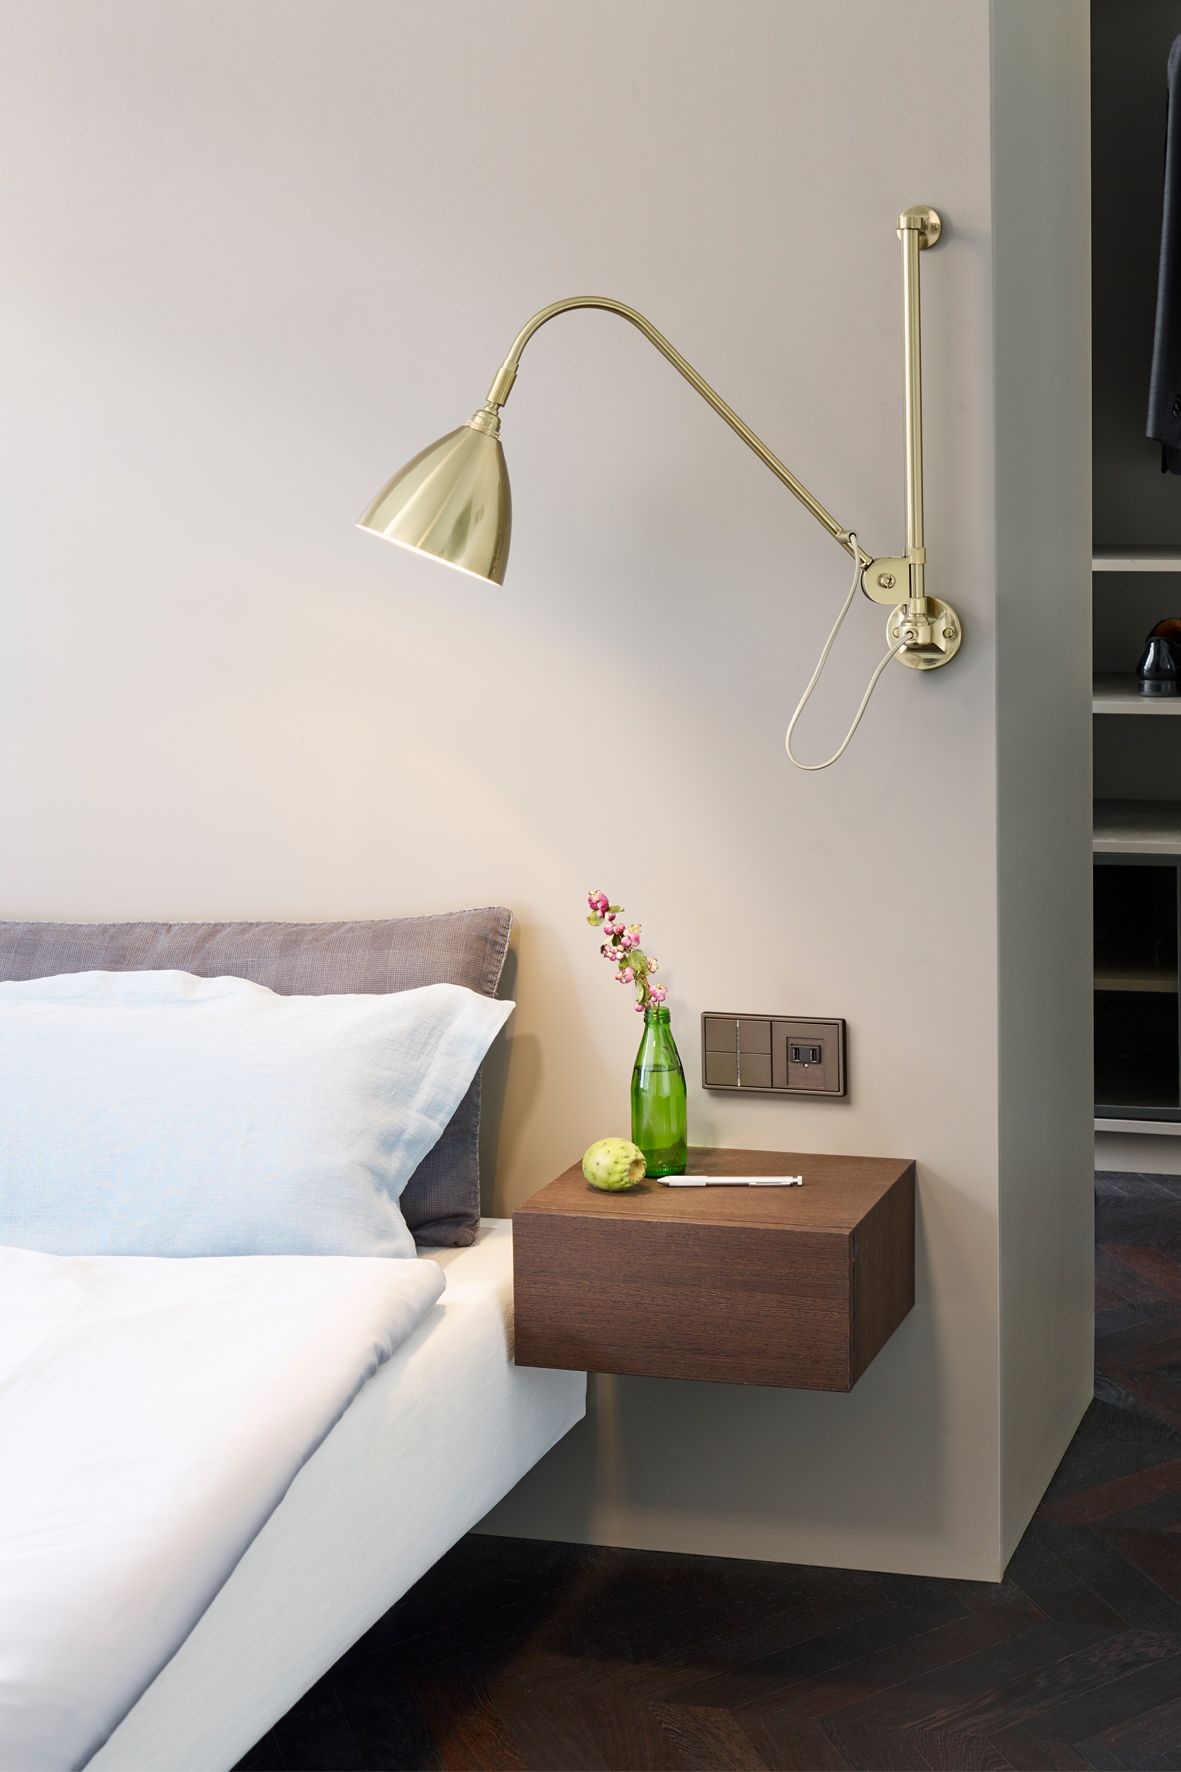 You Want To Feel At Home In The Hotel Bright Colours Soft Textiles Warm Wood And Selected Decoration Make This Room A Cosy Place To F